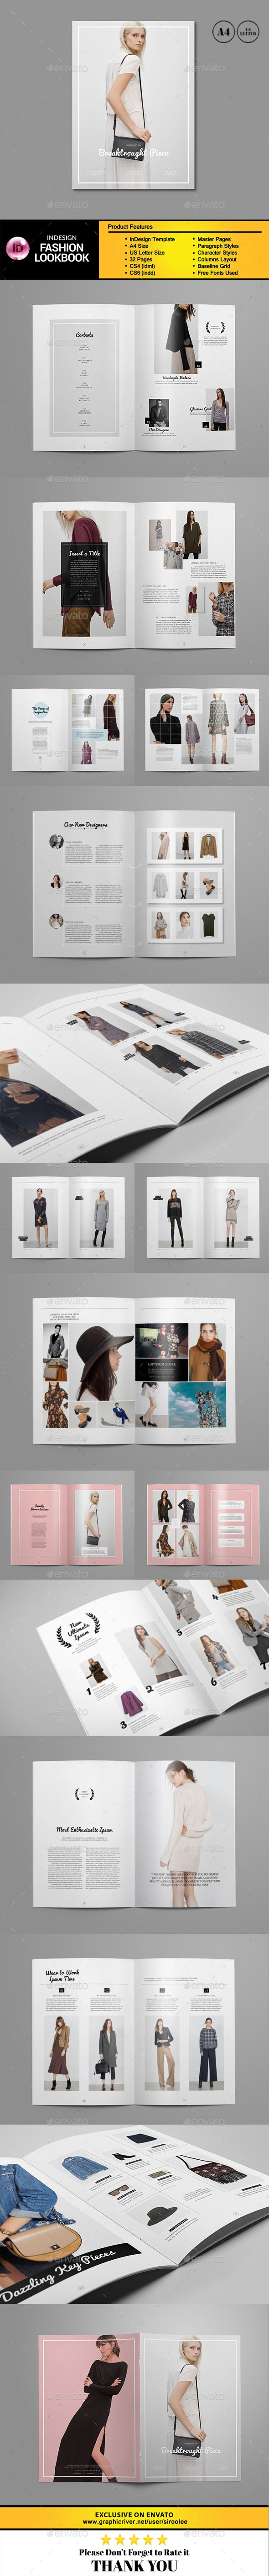 Fashion Lookbook Magazine 32 Pages Template InDesign INDD #design Download: http://graphicriver.net/item/fashion-lookbook-magazine/14317572?ref=ksioks